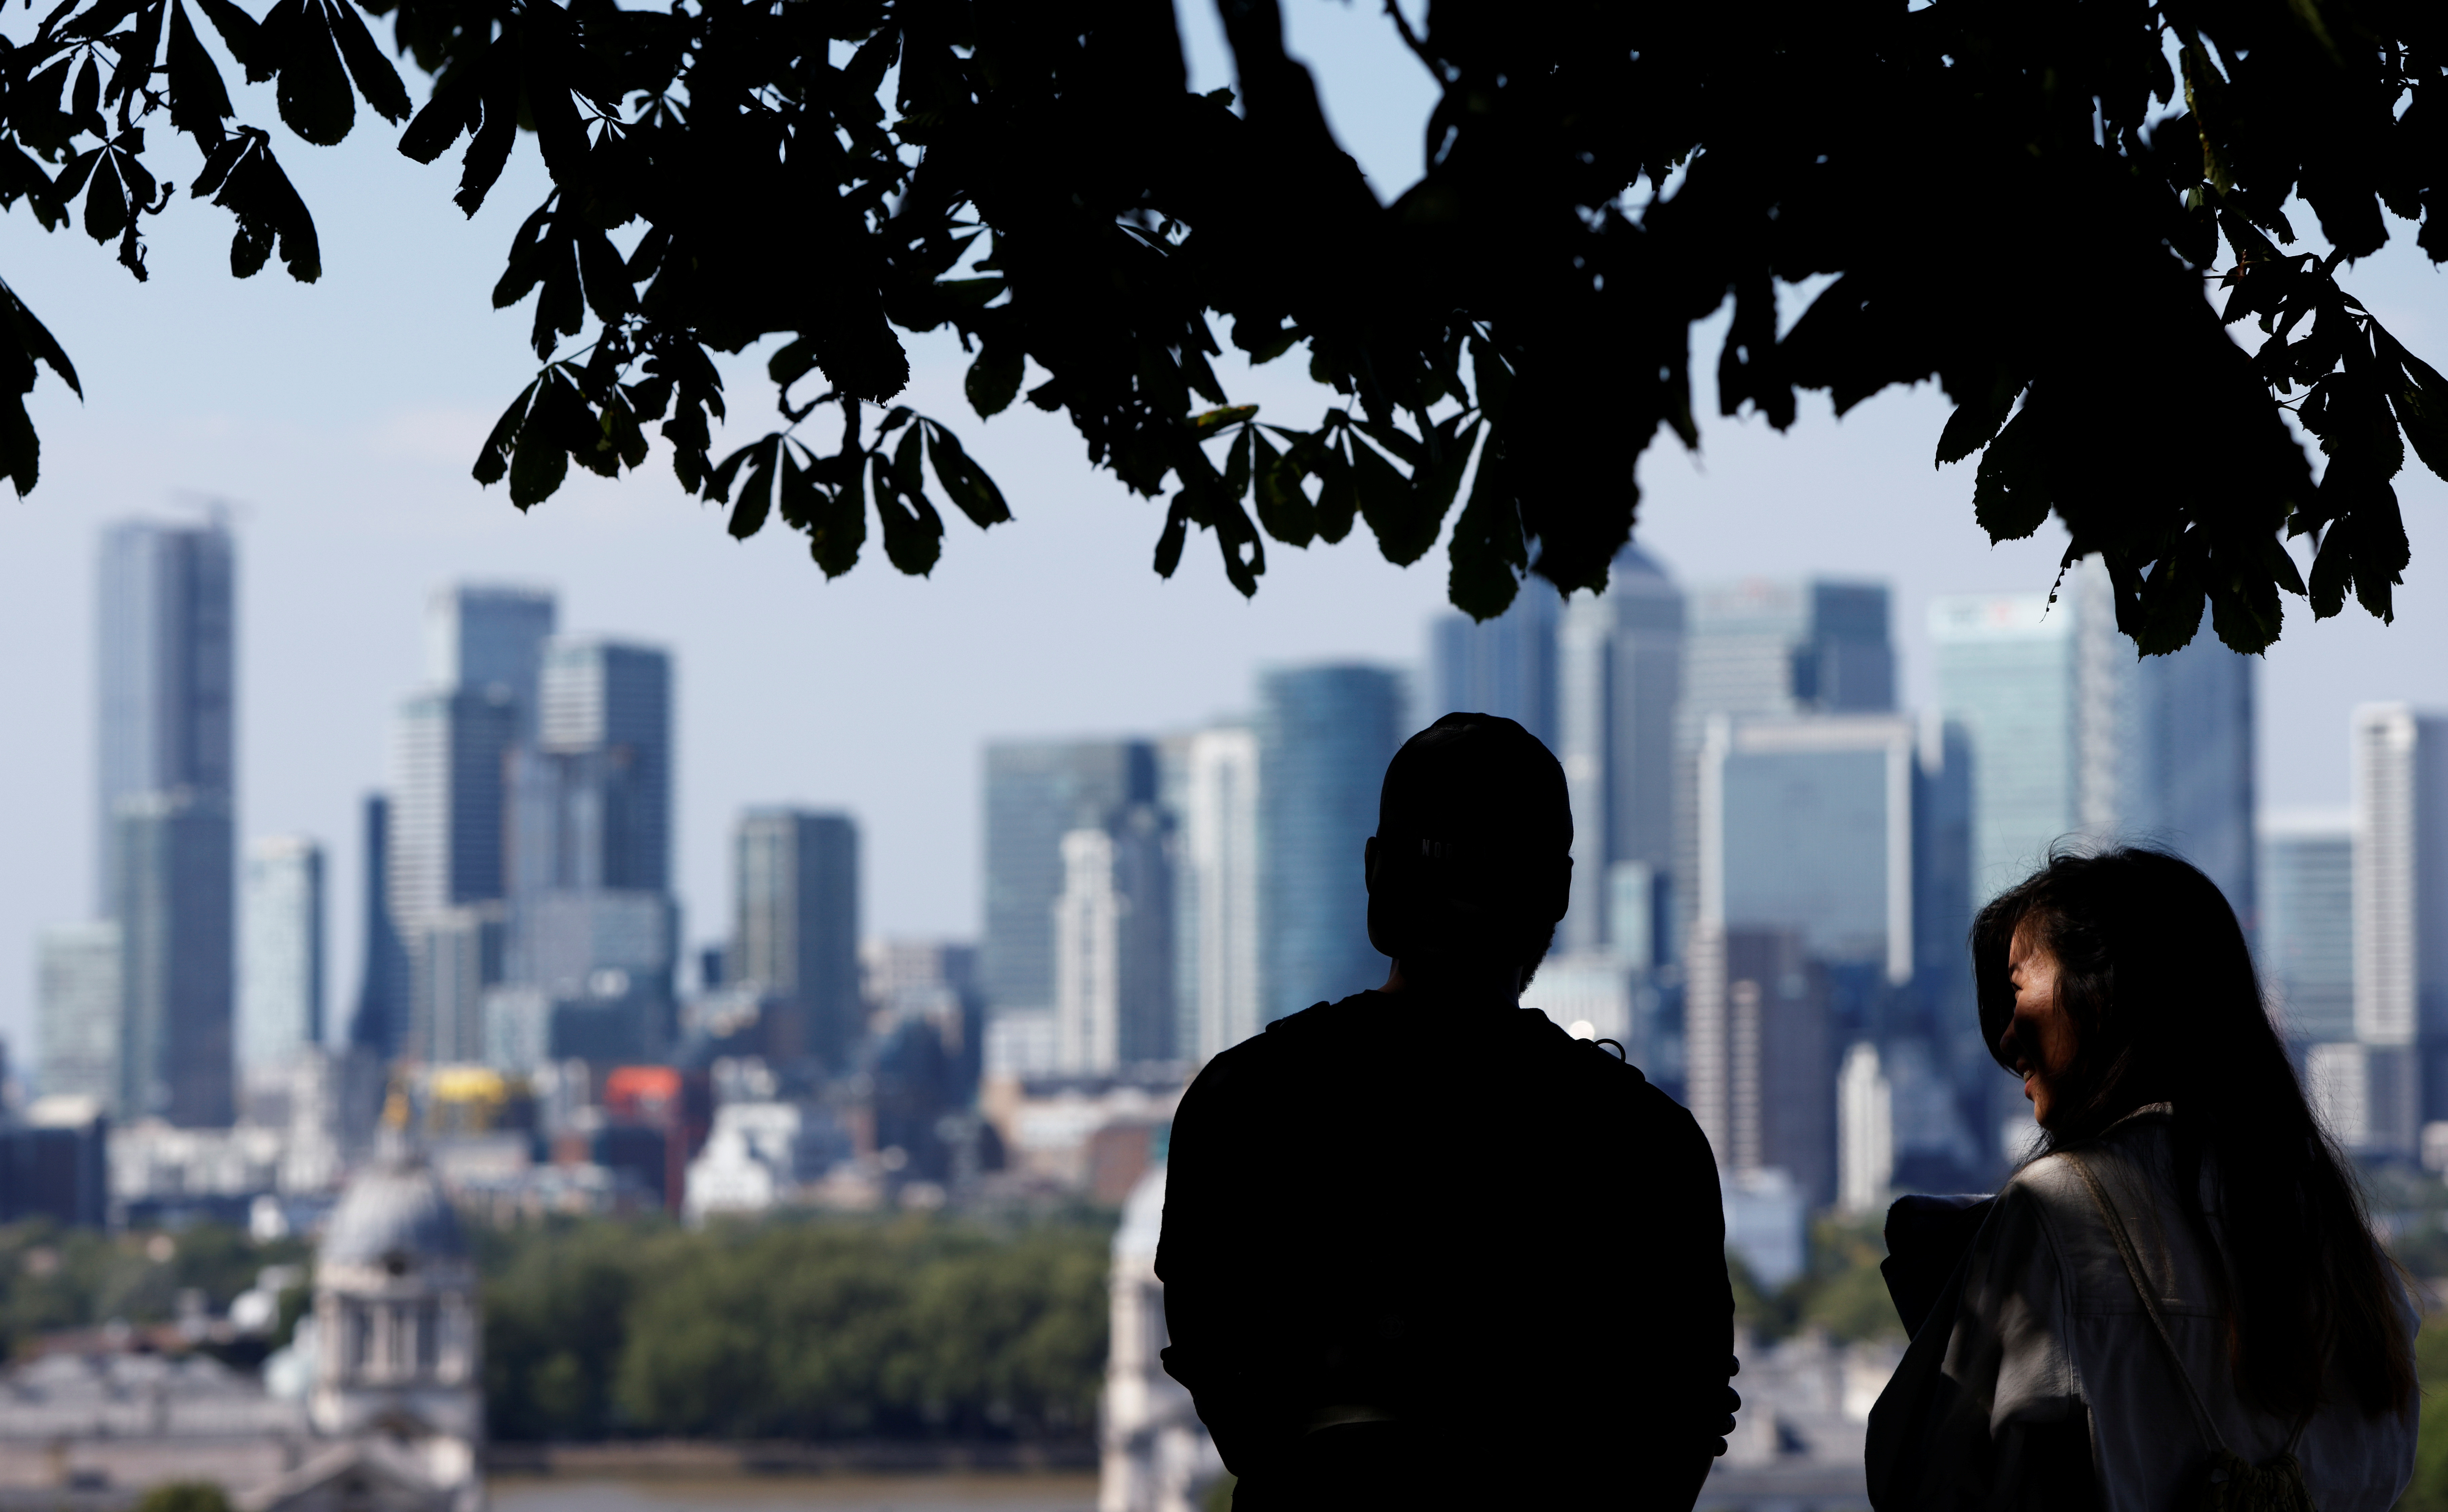 People enjoy the sunny weather in Greenwich Park, with Canary Wharf financial district in the background, in London, Britain, August 7, 2020. REUTERS/John Sibley - RC239I9WL6H9